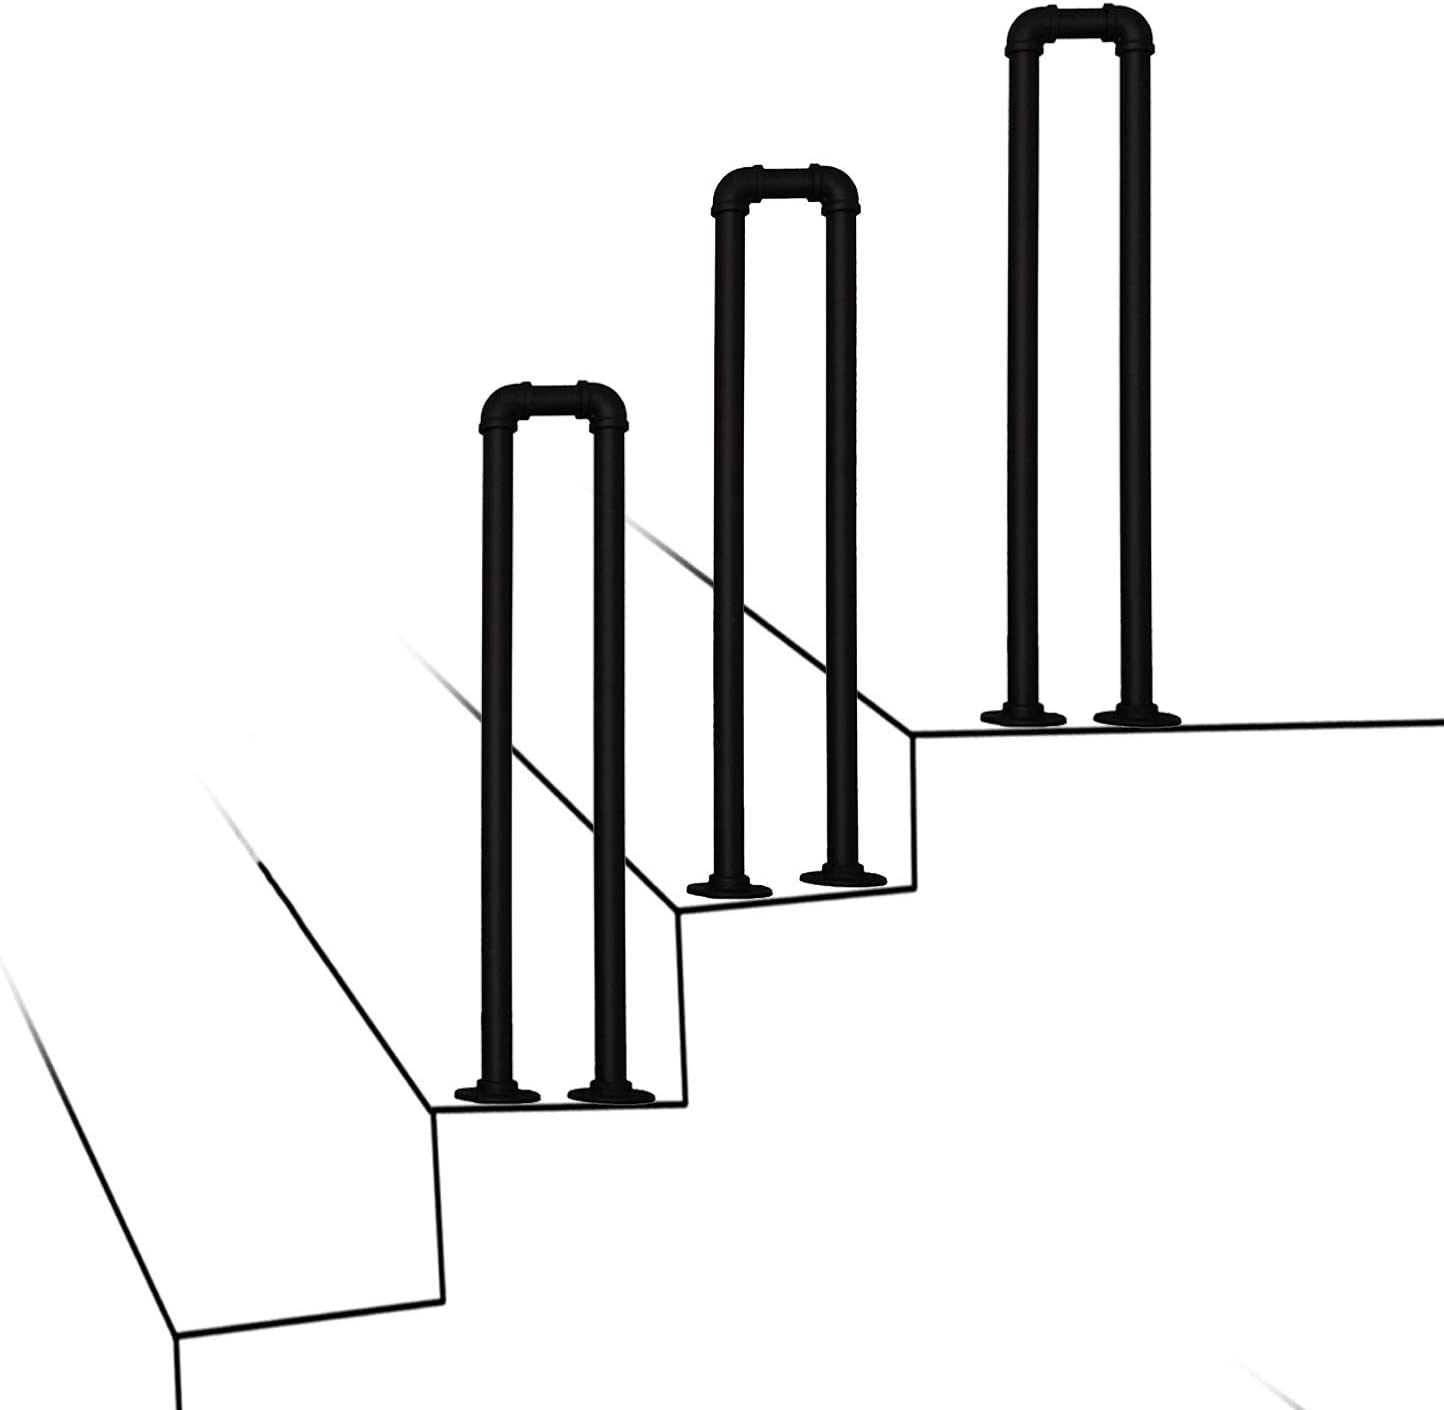 Max 43% OFF Outdoor Garden Max 49% OFF Staircase Handrails Wrought U-Type Railings Iron